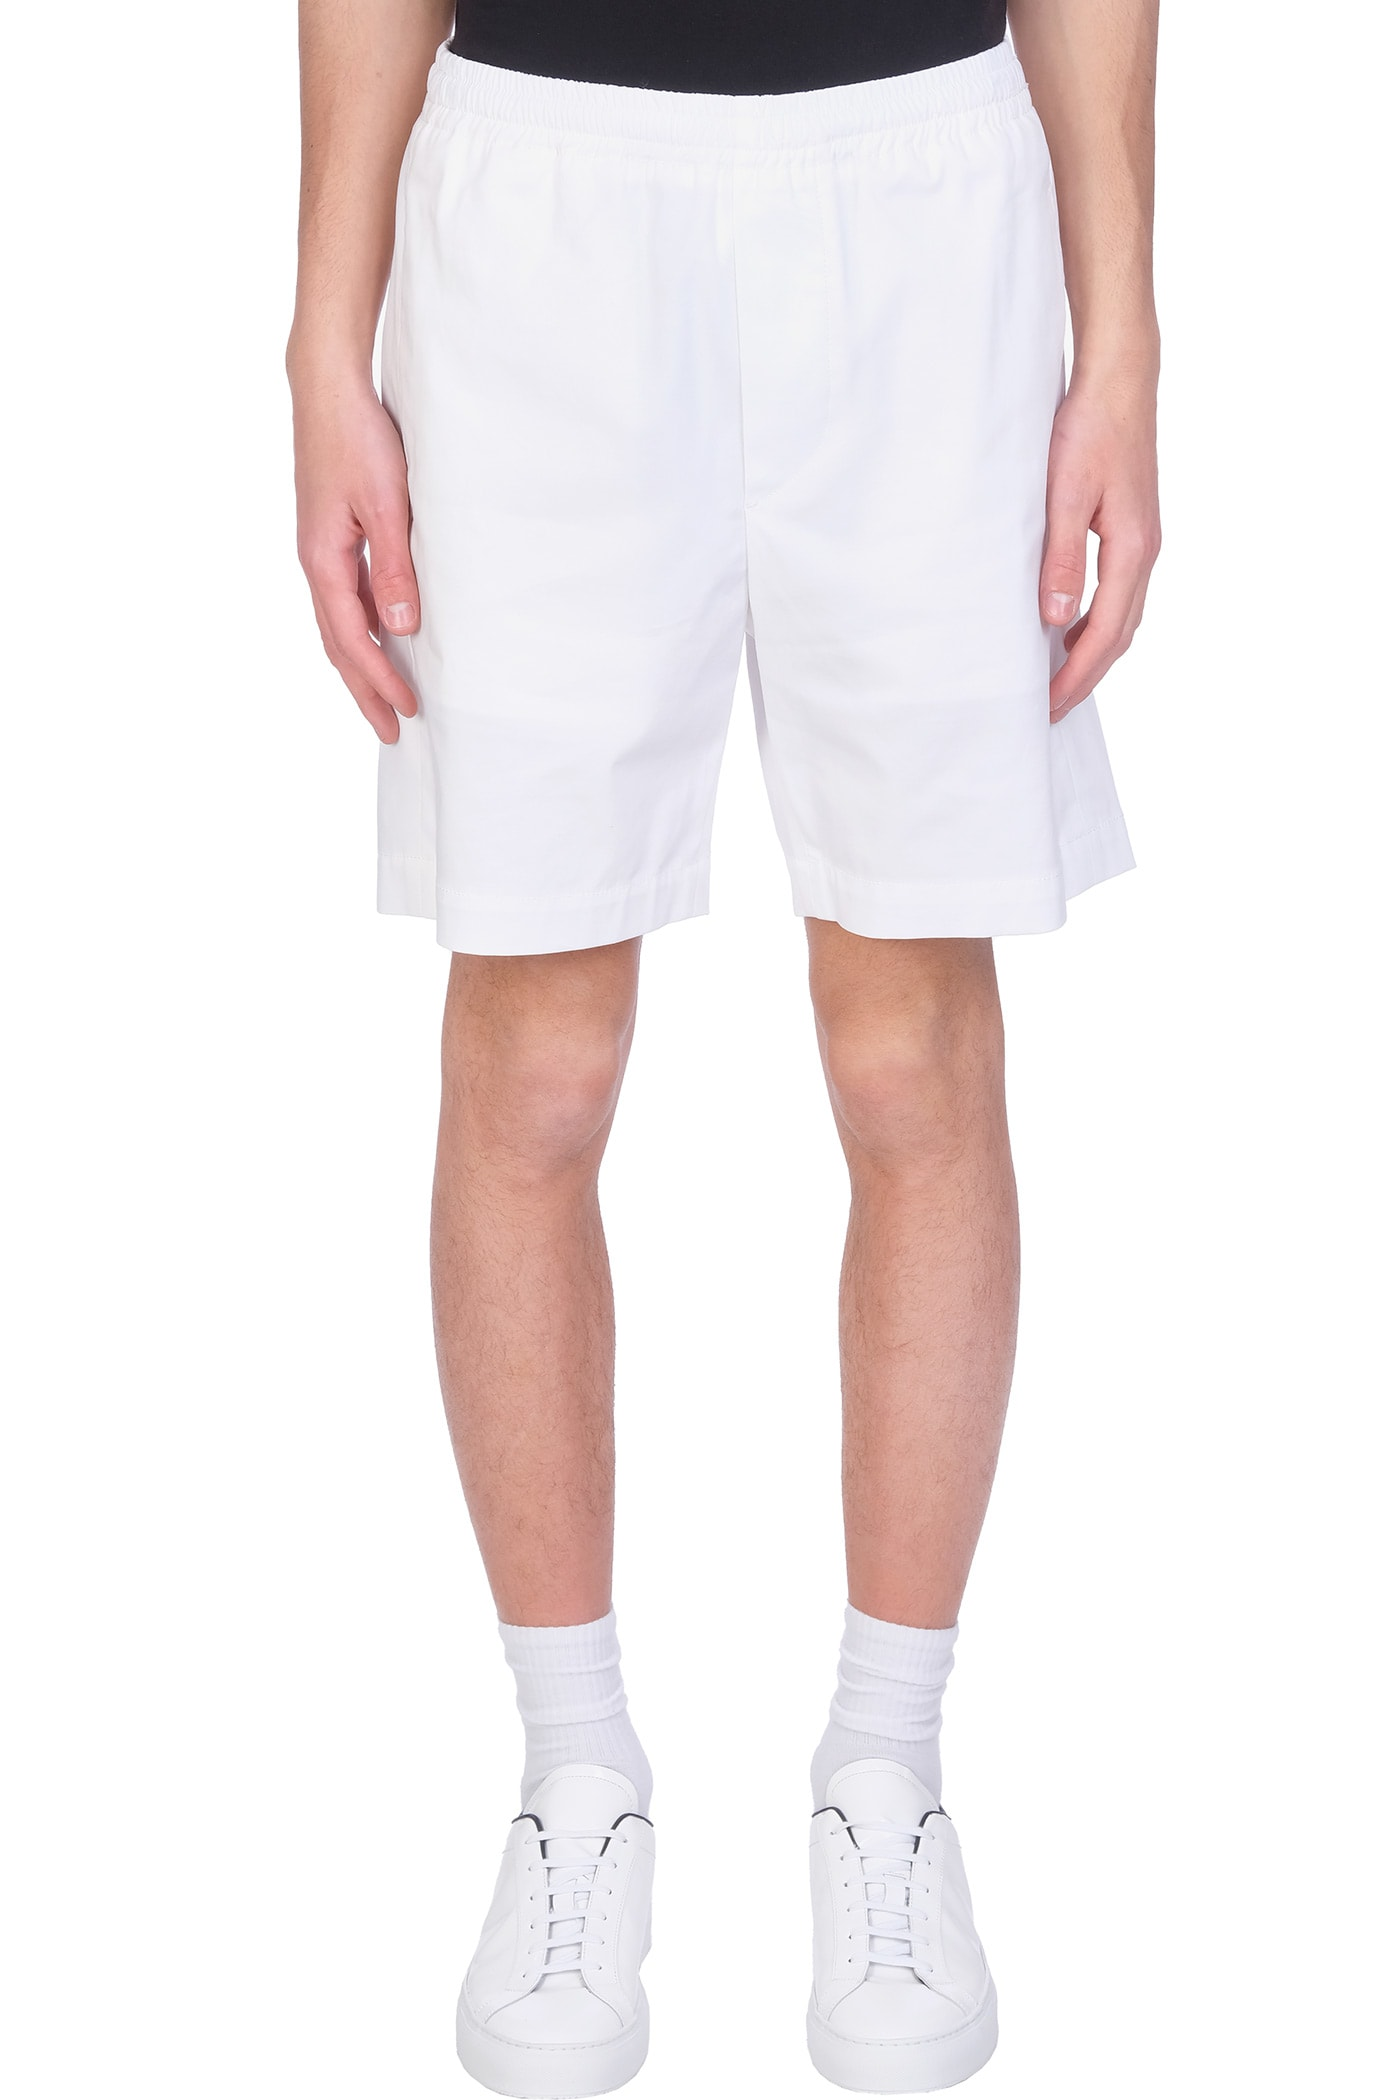 Shorts In White Cotton